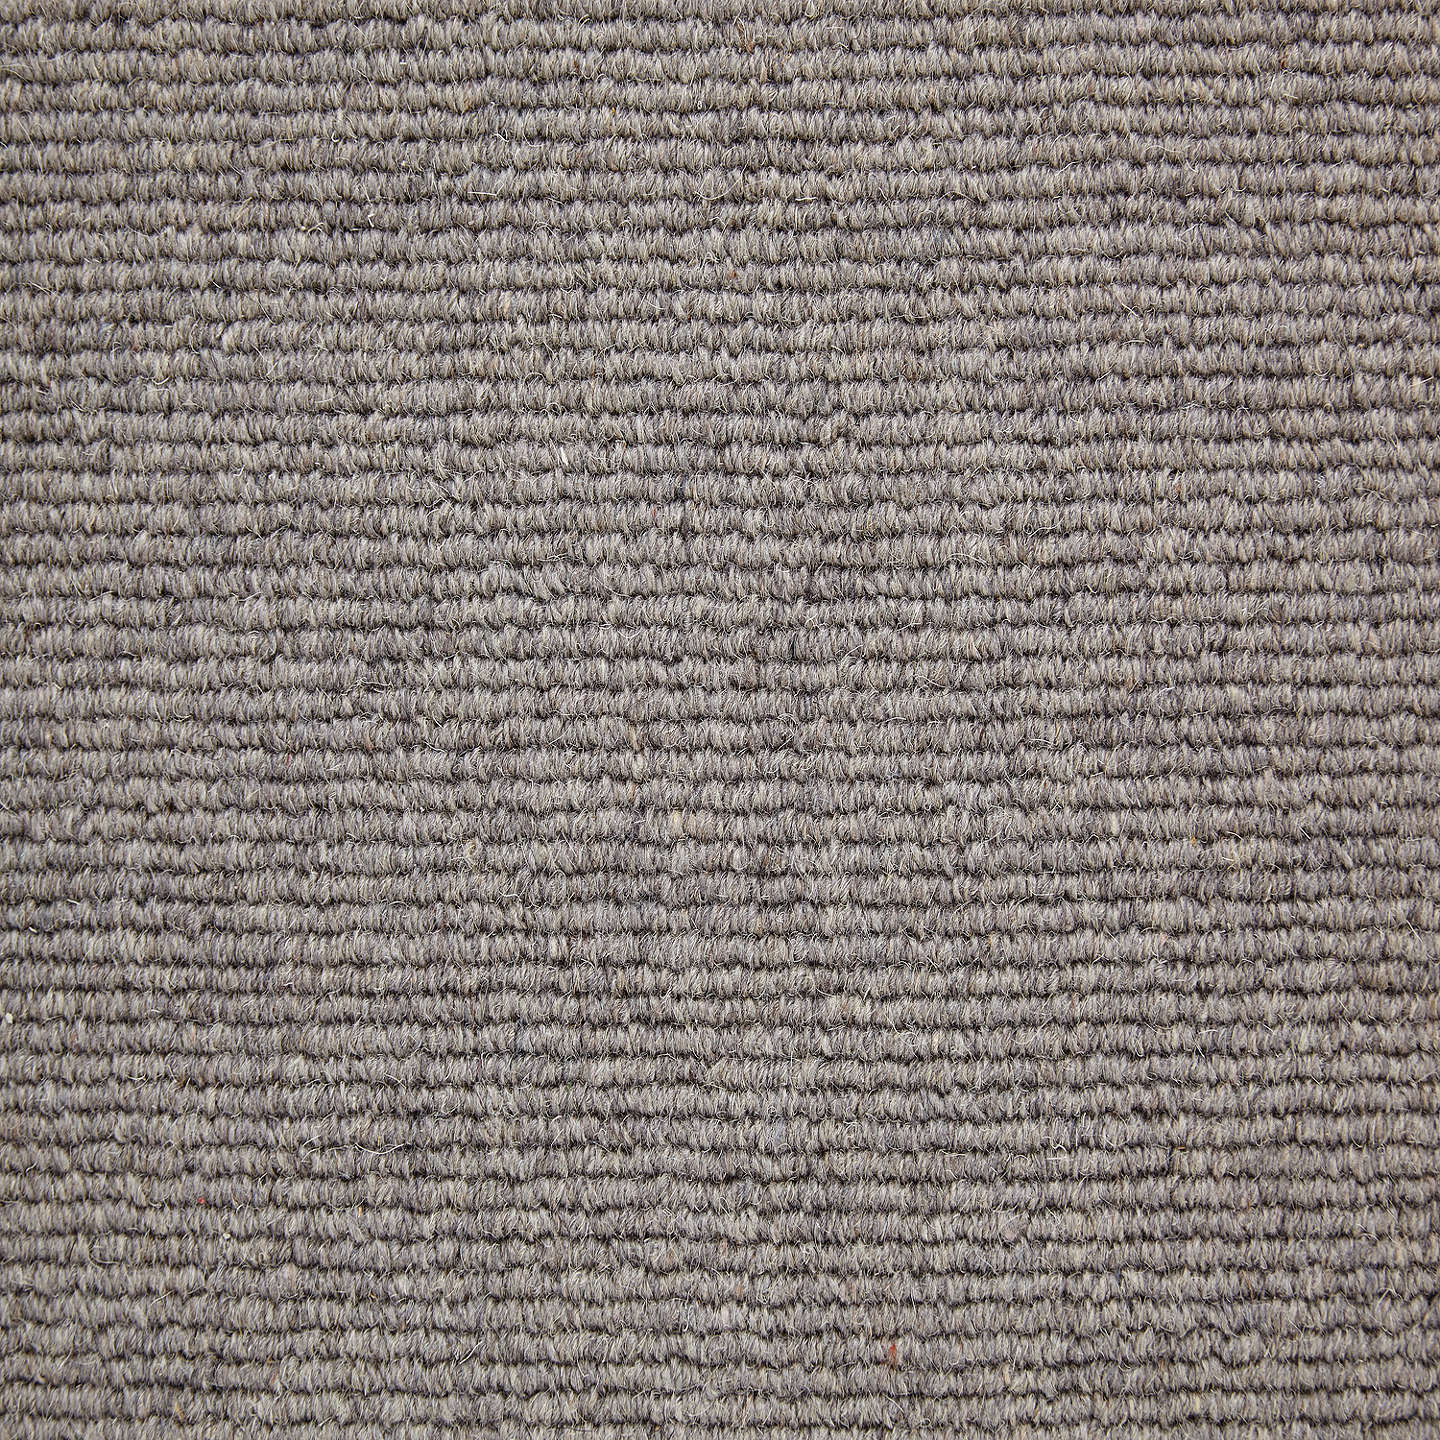 BuyJohn Lewis Avon Loop Carpet, Loop Lead Online at johnlewis.com